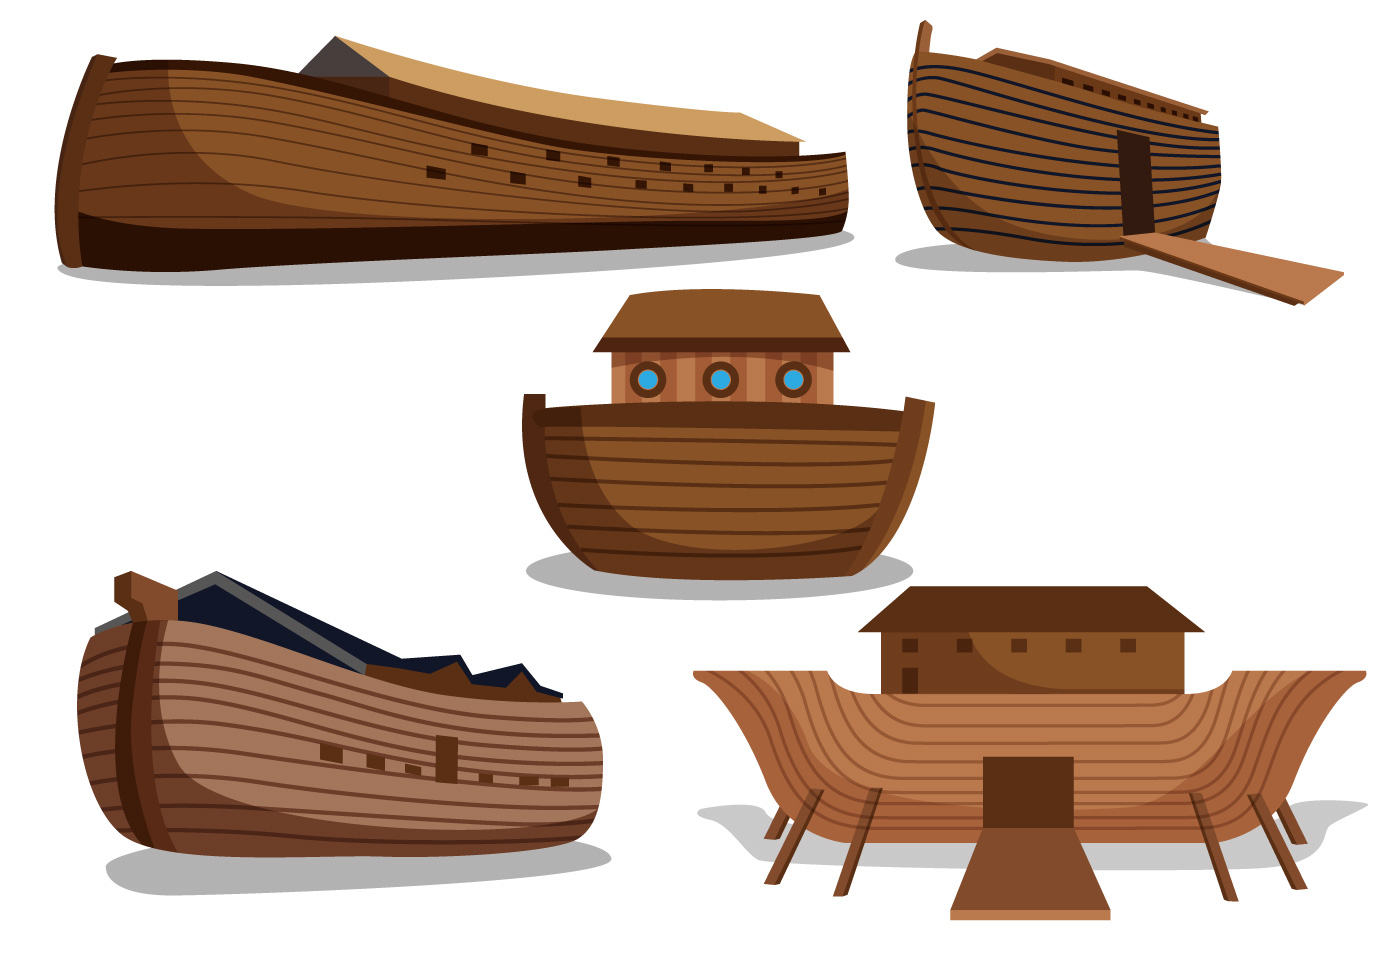 noahs ark essay In answer to mr mackenzie mr mackenzie: did you take the trouble to read the essay itself, or the noah's ark article your comments suggest to me that you have not.